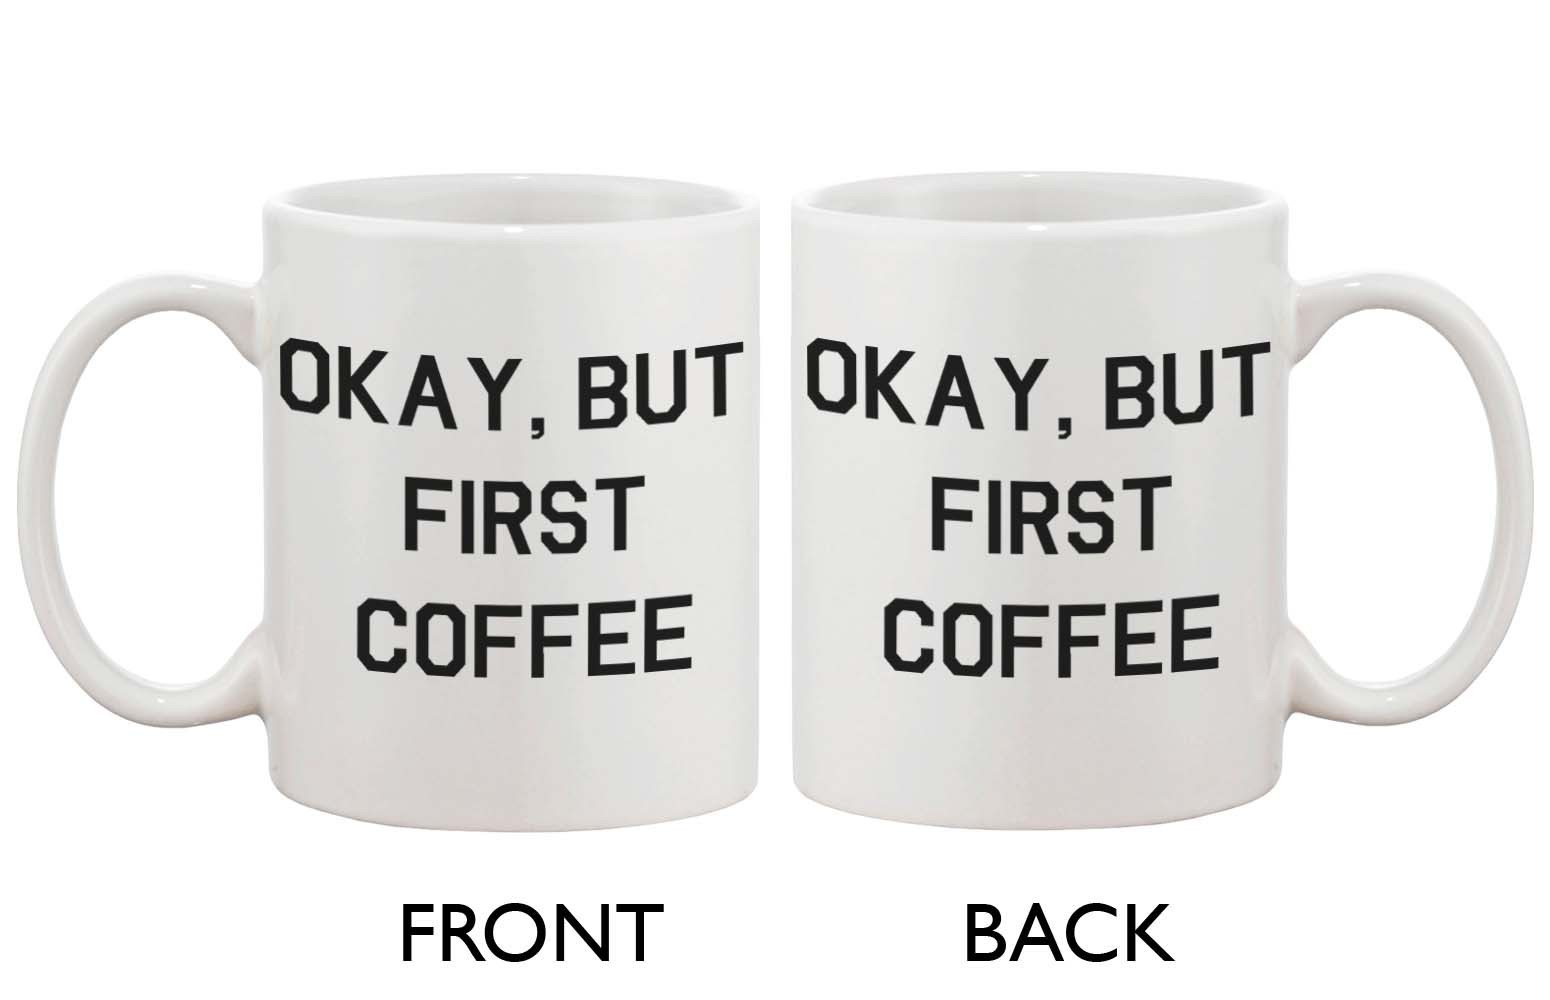 Funny Bold Statement Mug - Okay, But First Coffee